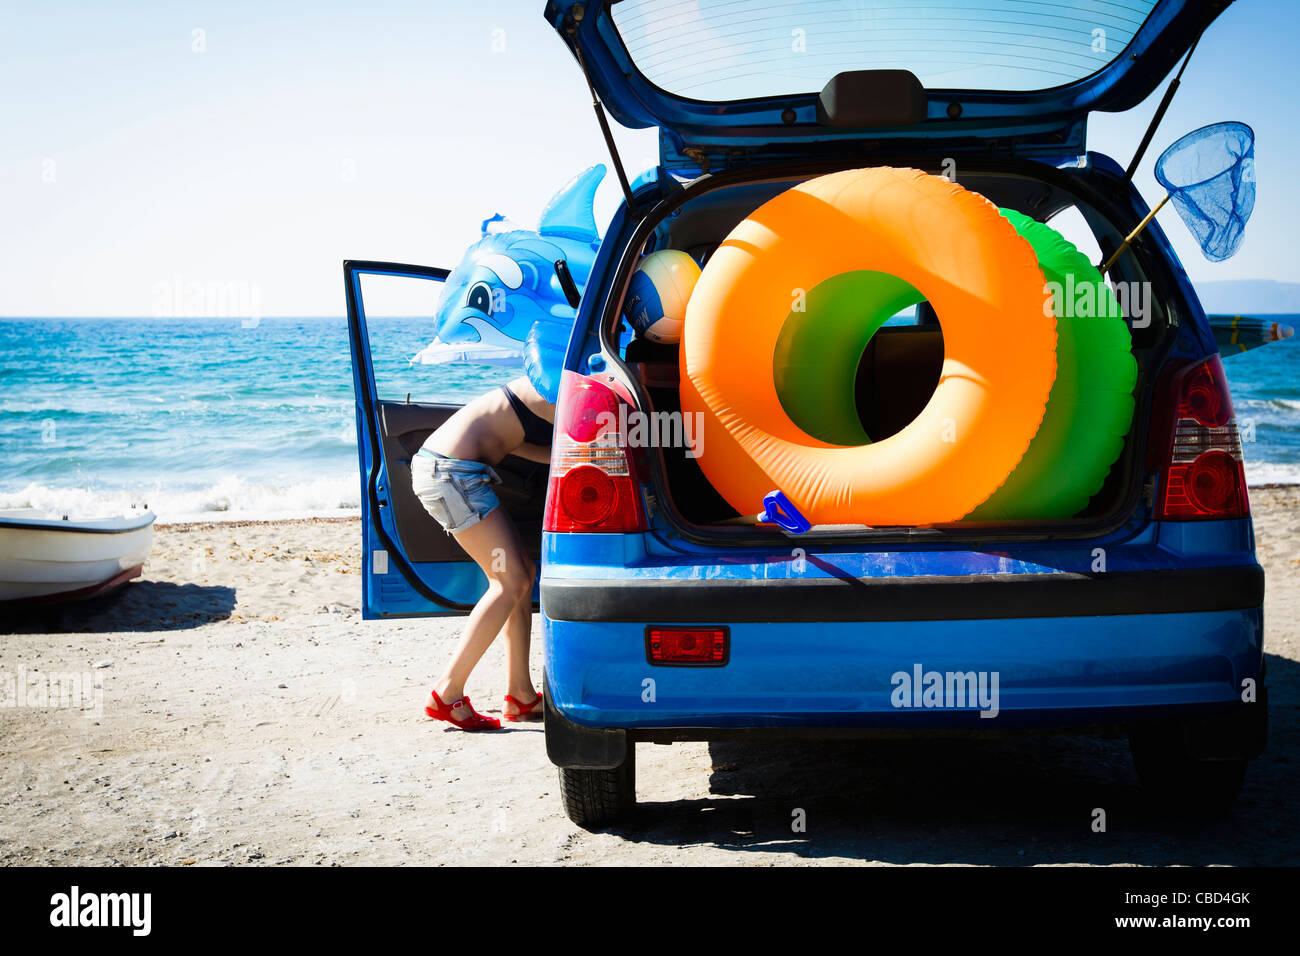 Woman unloading beach toys from car - Stock Image